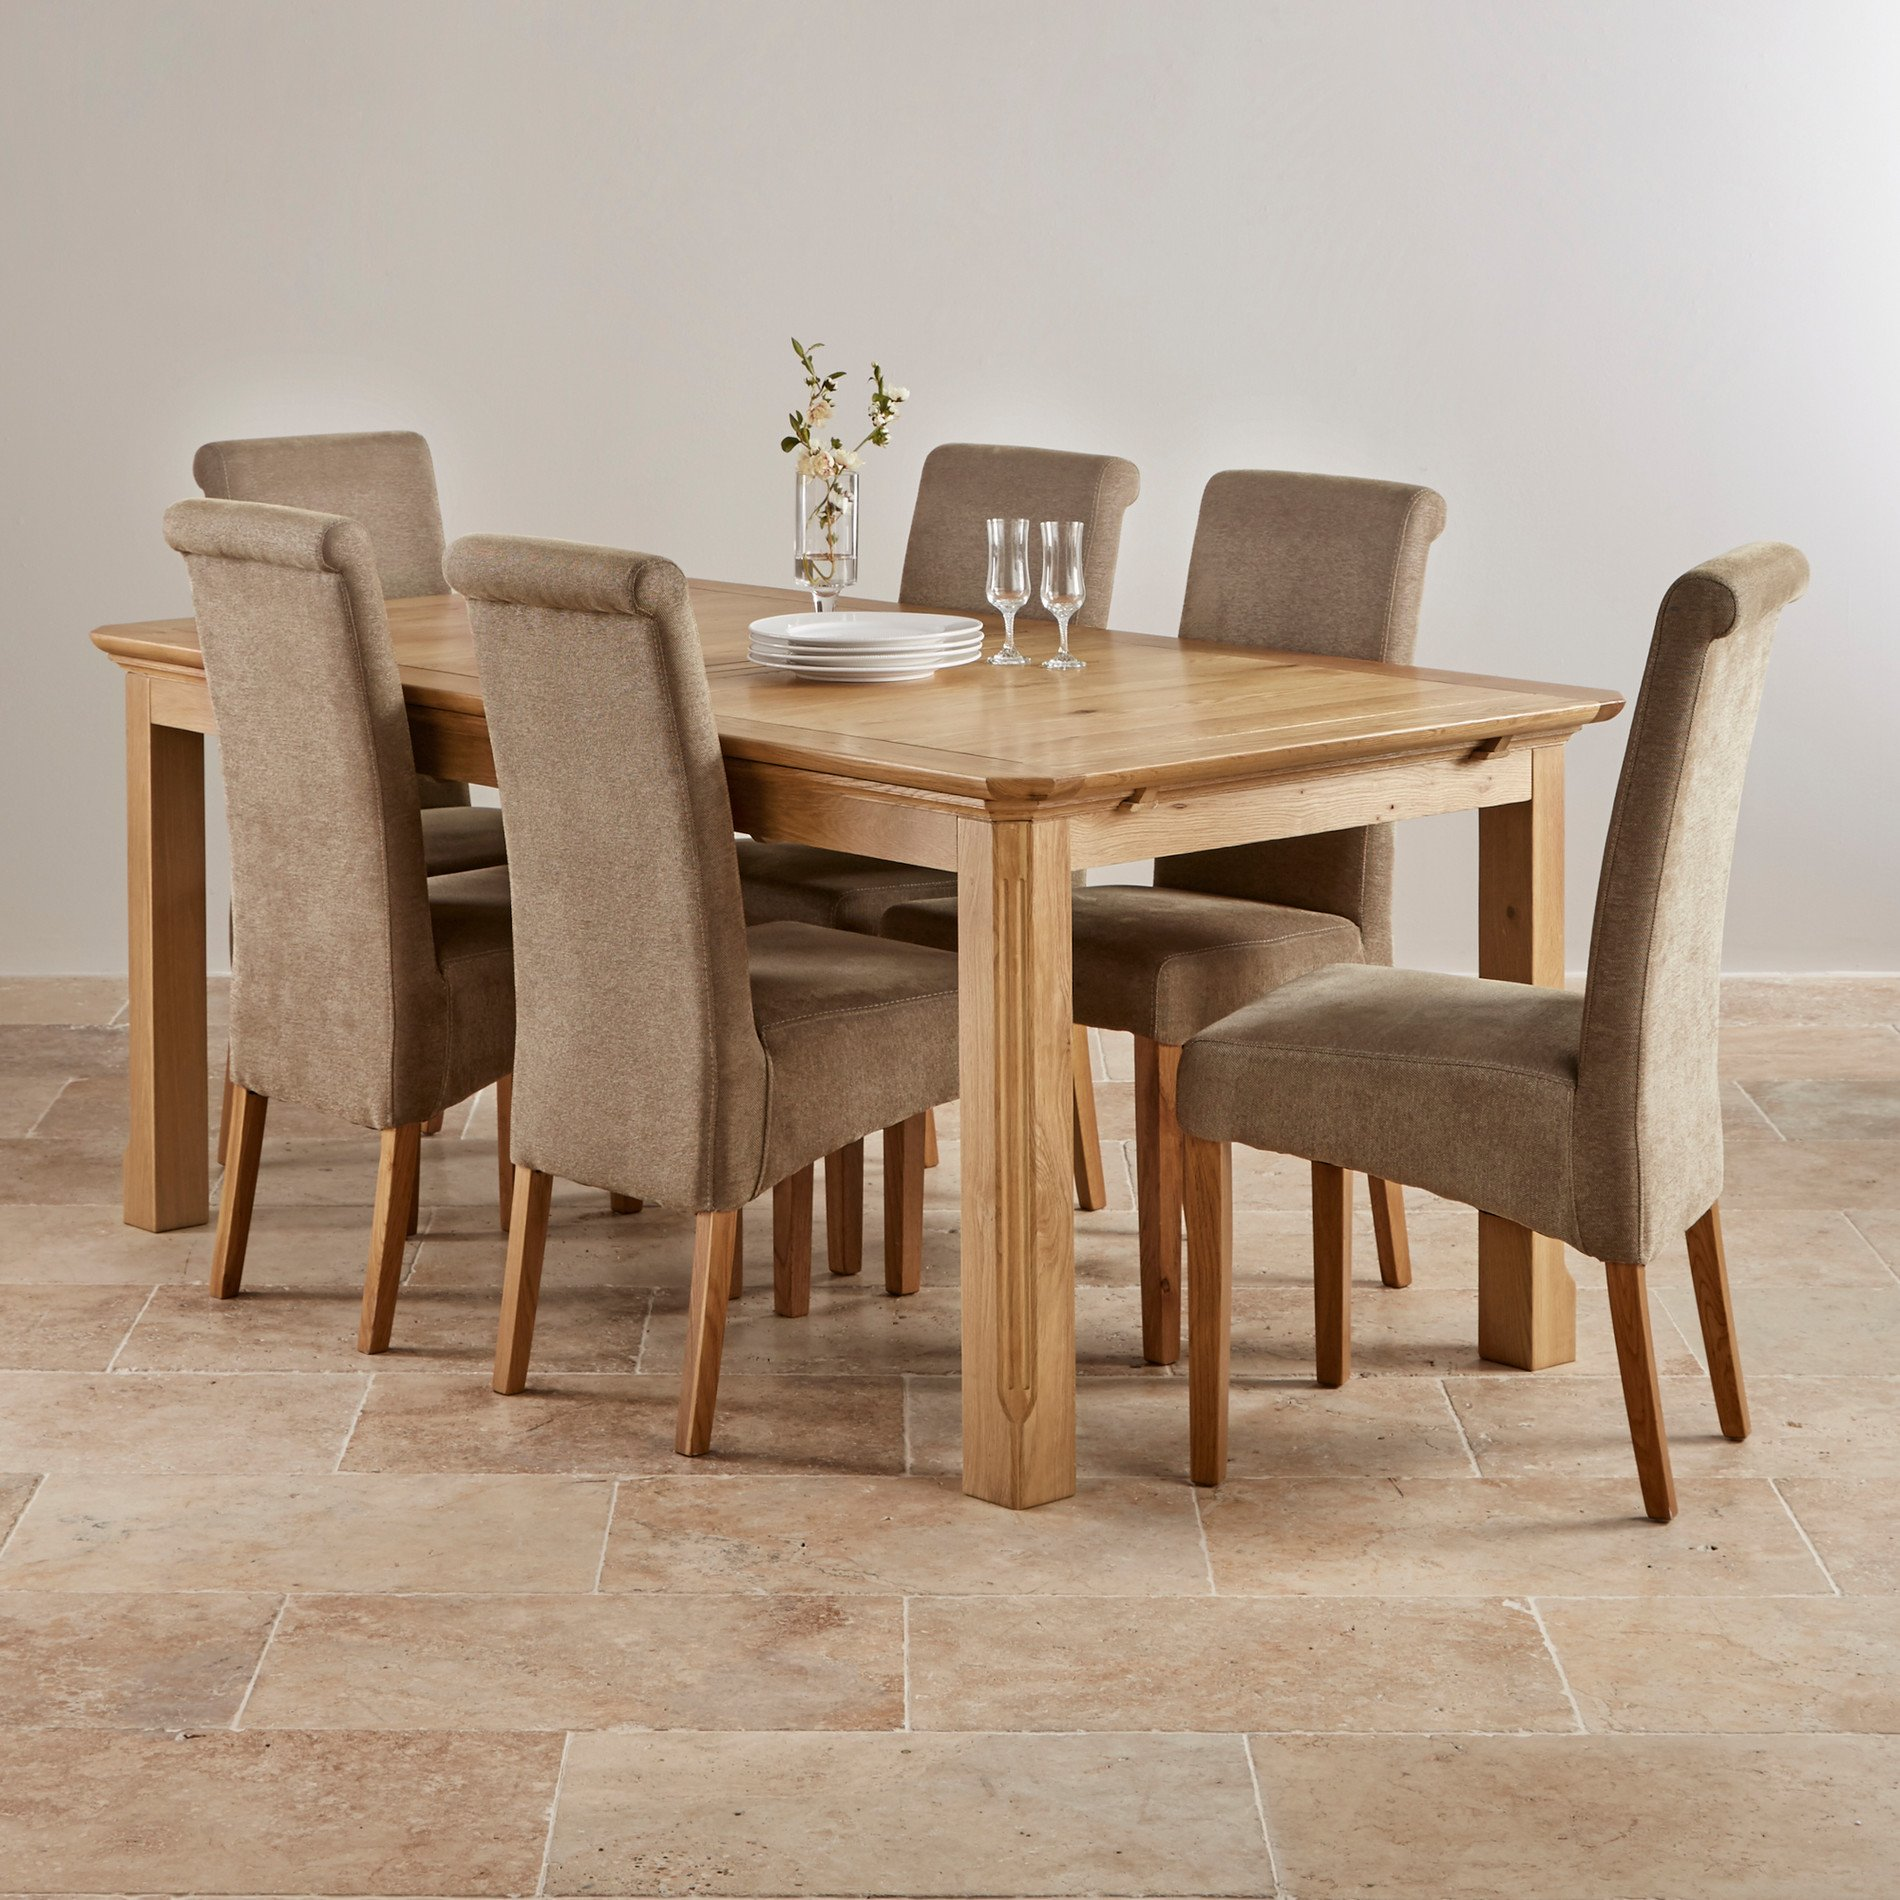 Edinburgh Natural Solid Oak Dining Set 6ft Extending Table With 6 Scroll Back Plain Sage